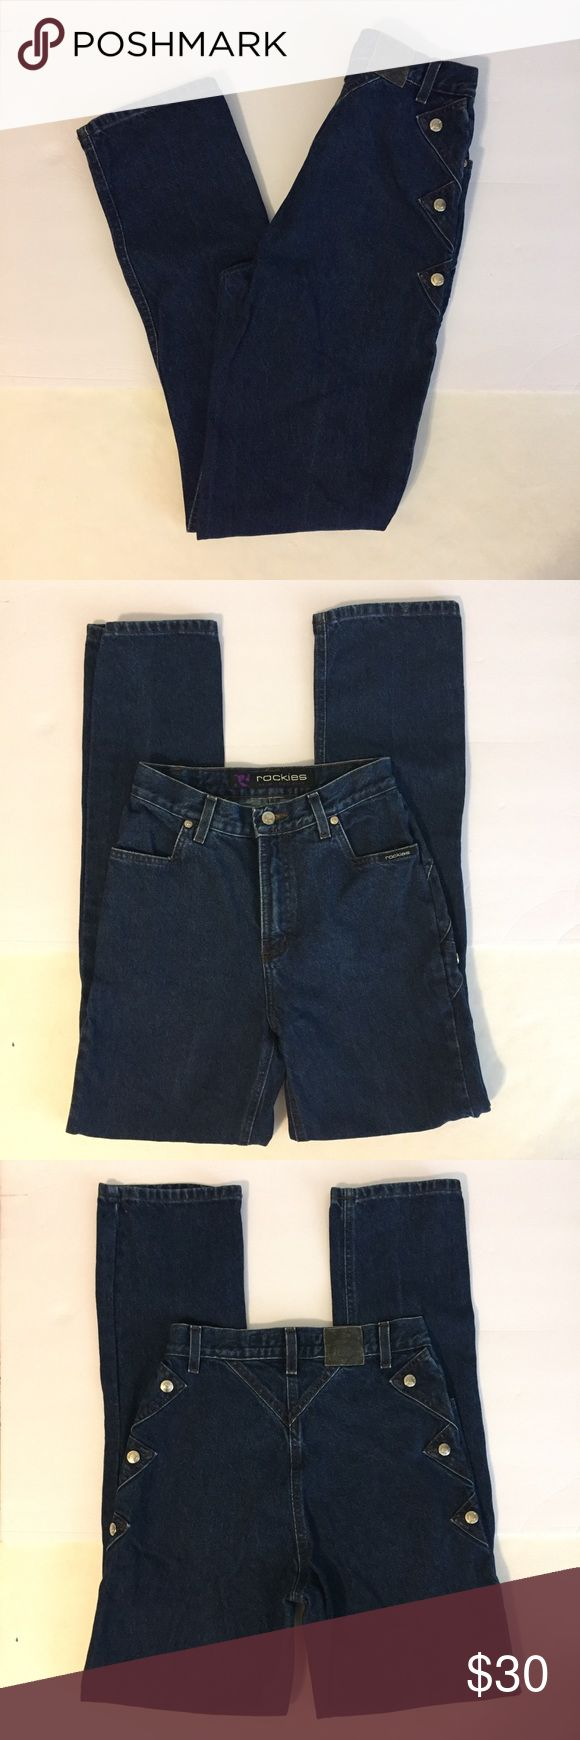 """Vintage Rockies Western Jeans (B16) Vintage, super high waist, Rockies Western Jeans.  These are in great pre-owned condition.  Great snap detailing on the sides.  No snags, holes or stains.  Very little fading and no fraying.  These are vintage, fabulous.  Size 5/6L.  Rise 11"""".  Inseam 32"""".  Flat waist 13 1/2"""".  Hips 18"""".  Leg opening 7"""" Rockies Jeans Straight Leg"""